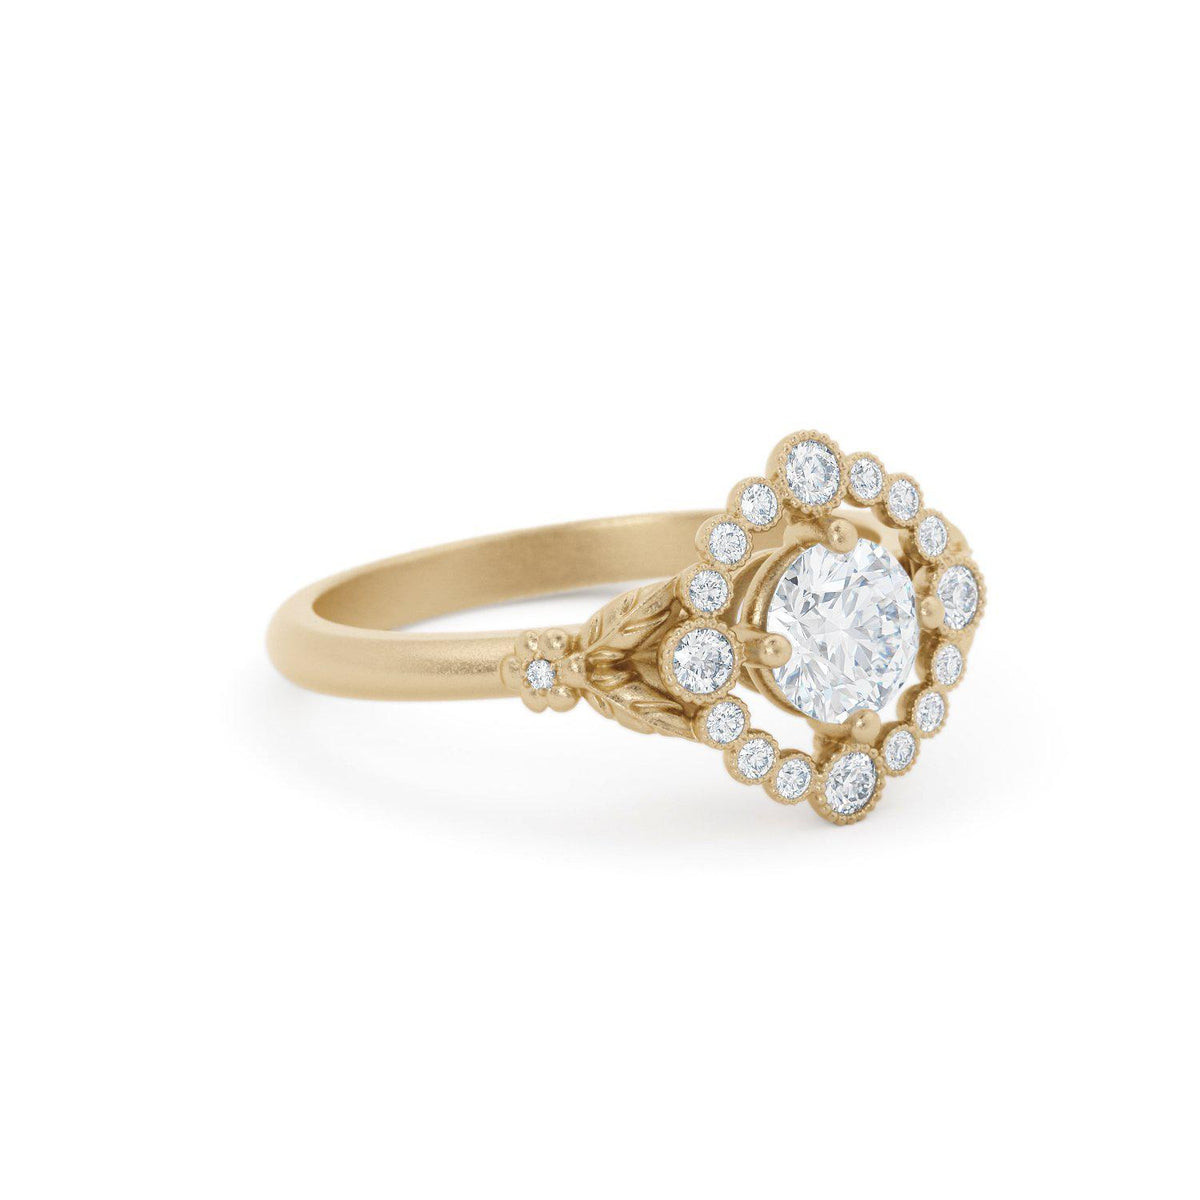 Scarlett Vintage Inspired Halo Engagement Ring